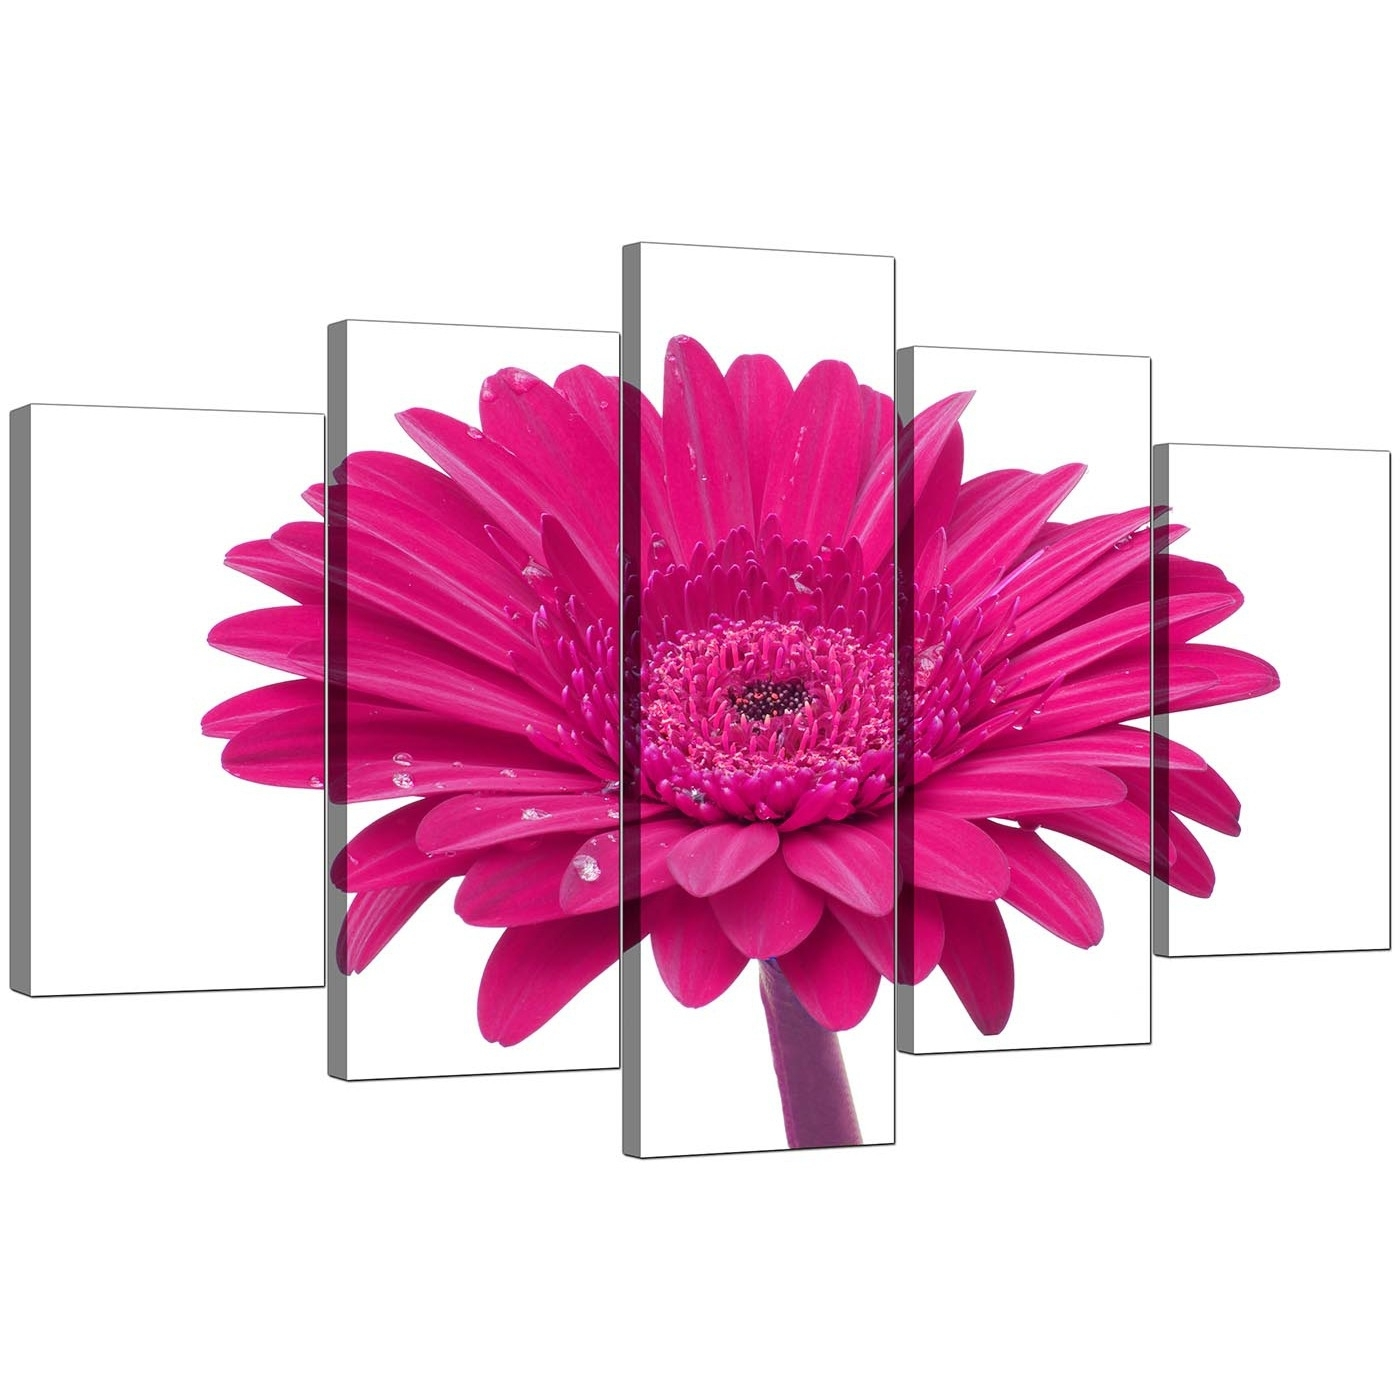 Extra Large Flower Canvas Wall Art 5 Piece In Pink Intended For Most Popular Pink Wall Art (View 11 of 20)